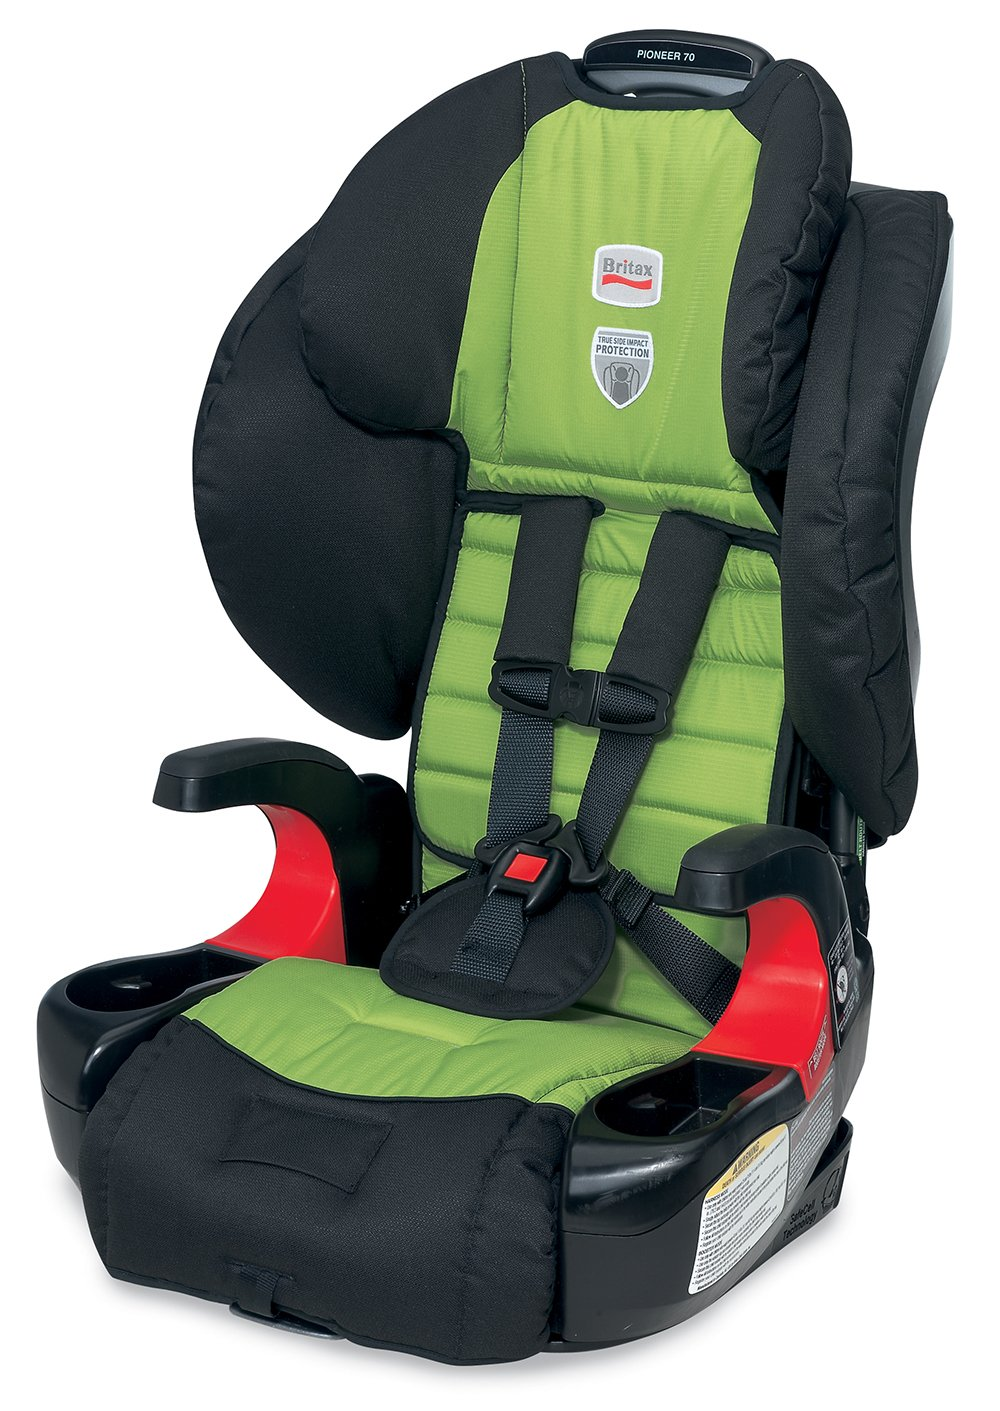 Amazon Britax Pioneer 70 Harness 2 Booster Car Seat Kiwi Older Version Child Safety Seats Baby